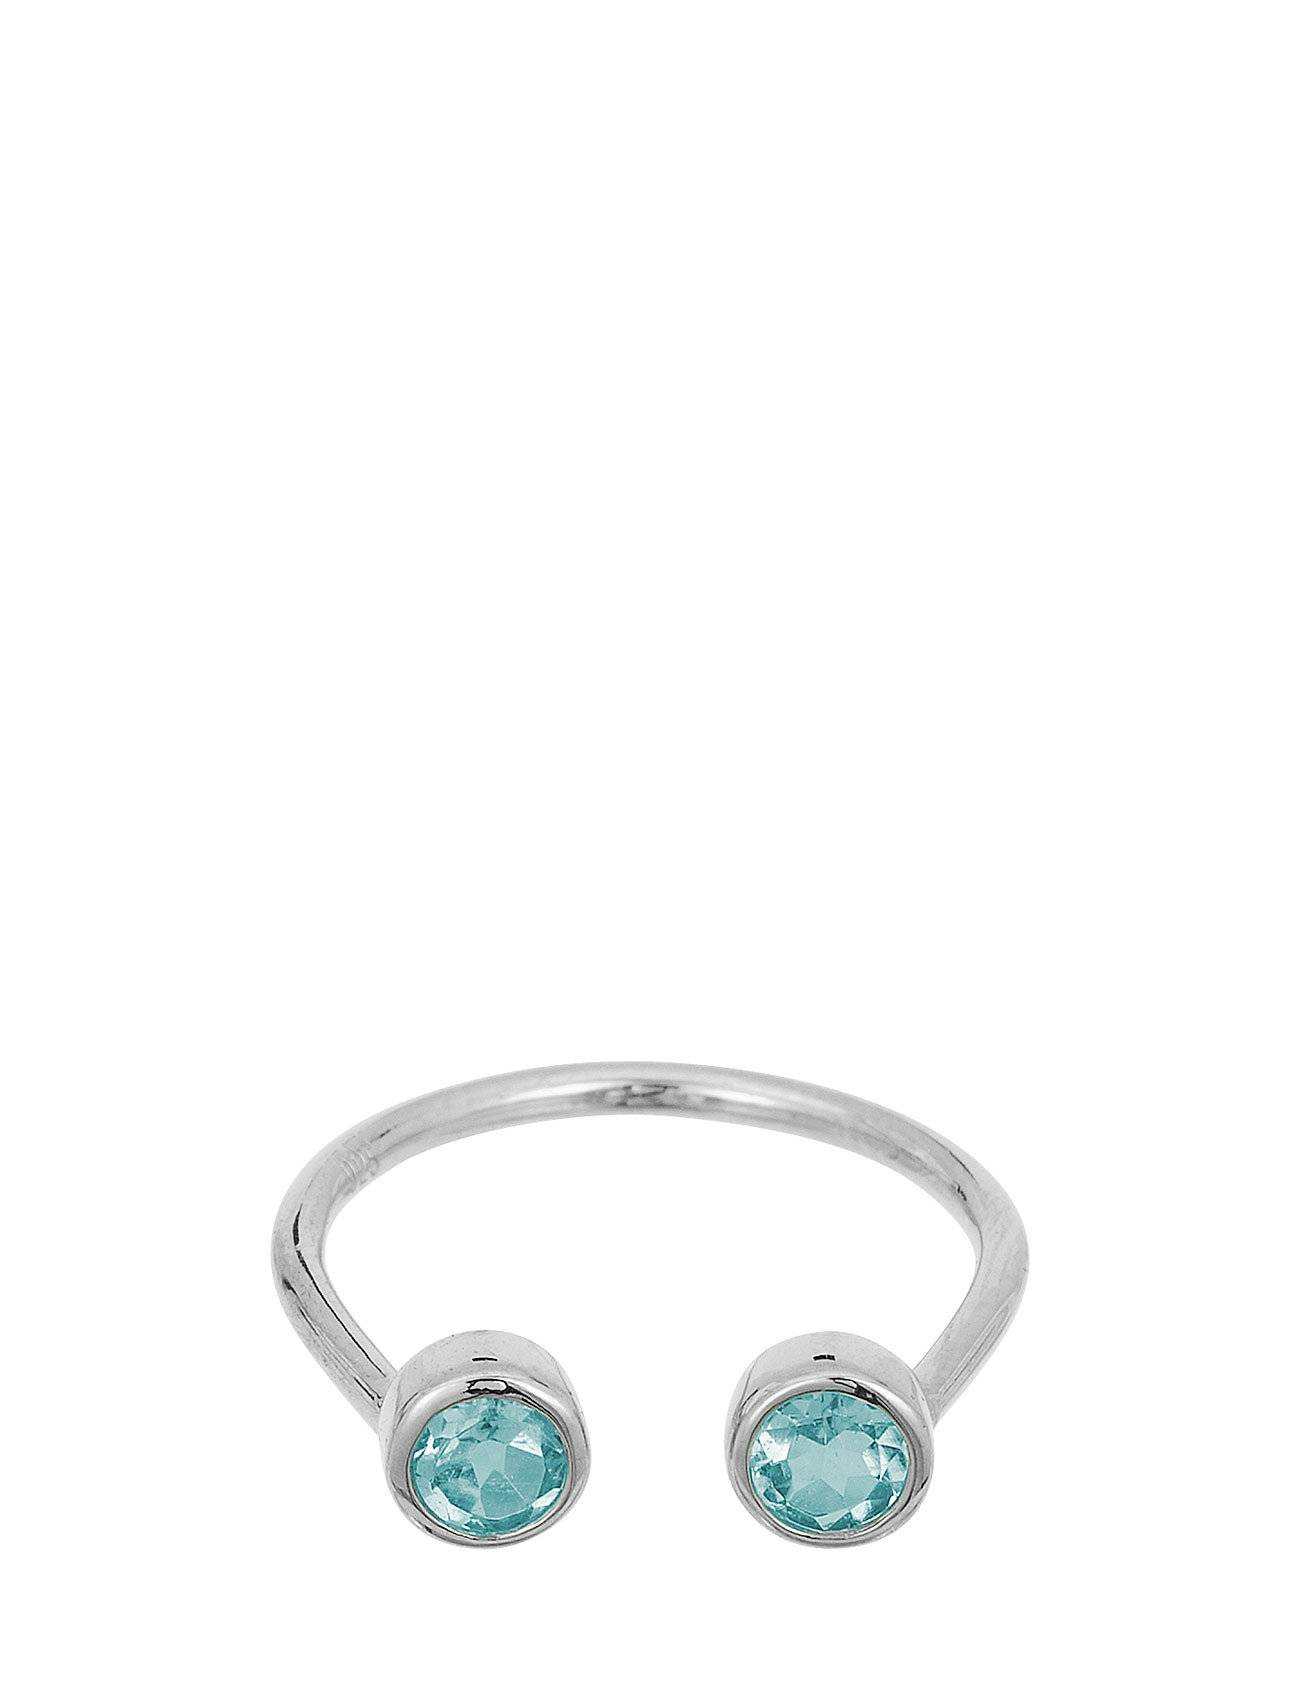 SOPHIE by SOPHIE Two Stone Ring